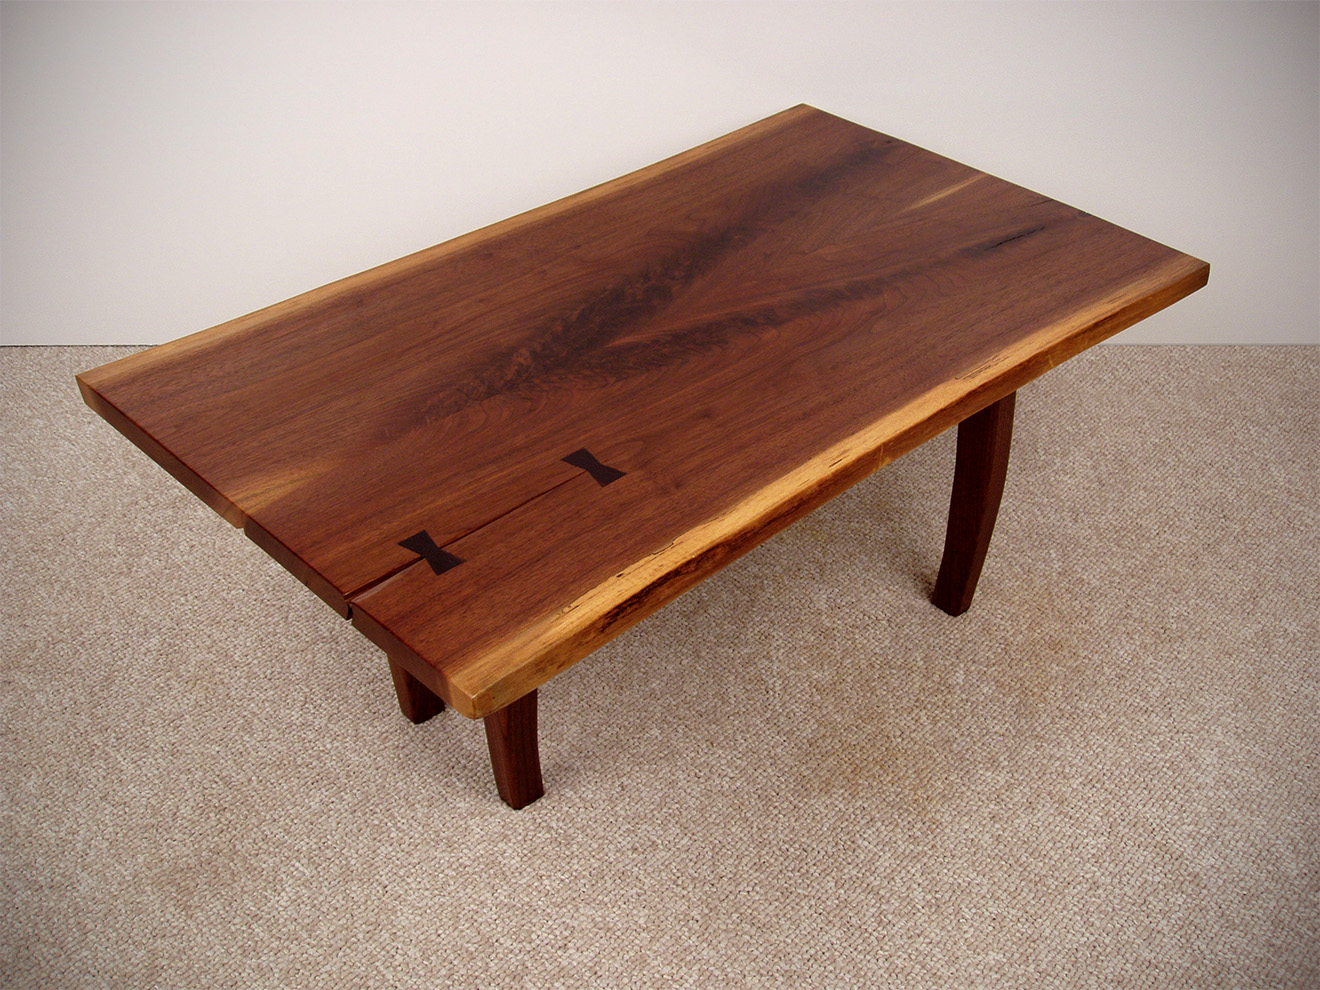 """Walnut Coffee Table Book matched Black Walnut flitches with Ebony inlaid butterflies. The base uses mortise and tenon, lap joint construction and hand-carved tapered legs. 16""""h × 38""""w × 20""""d"""